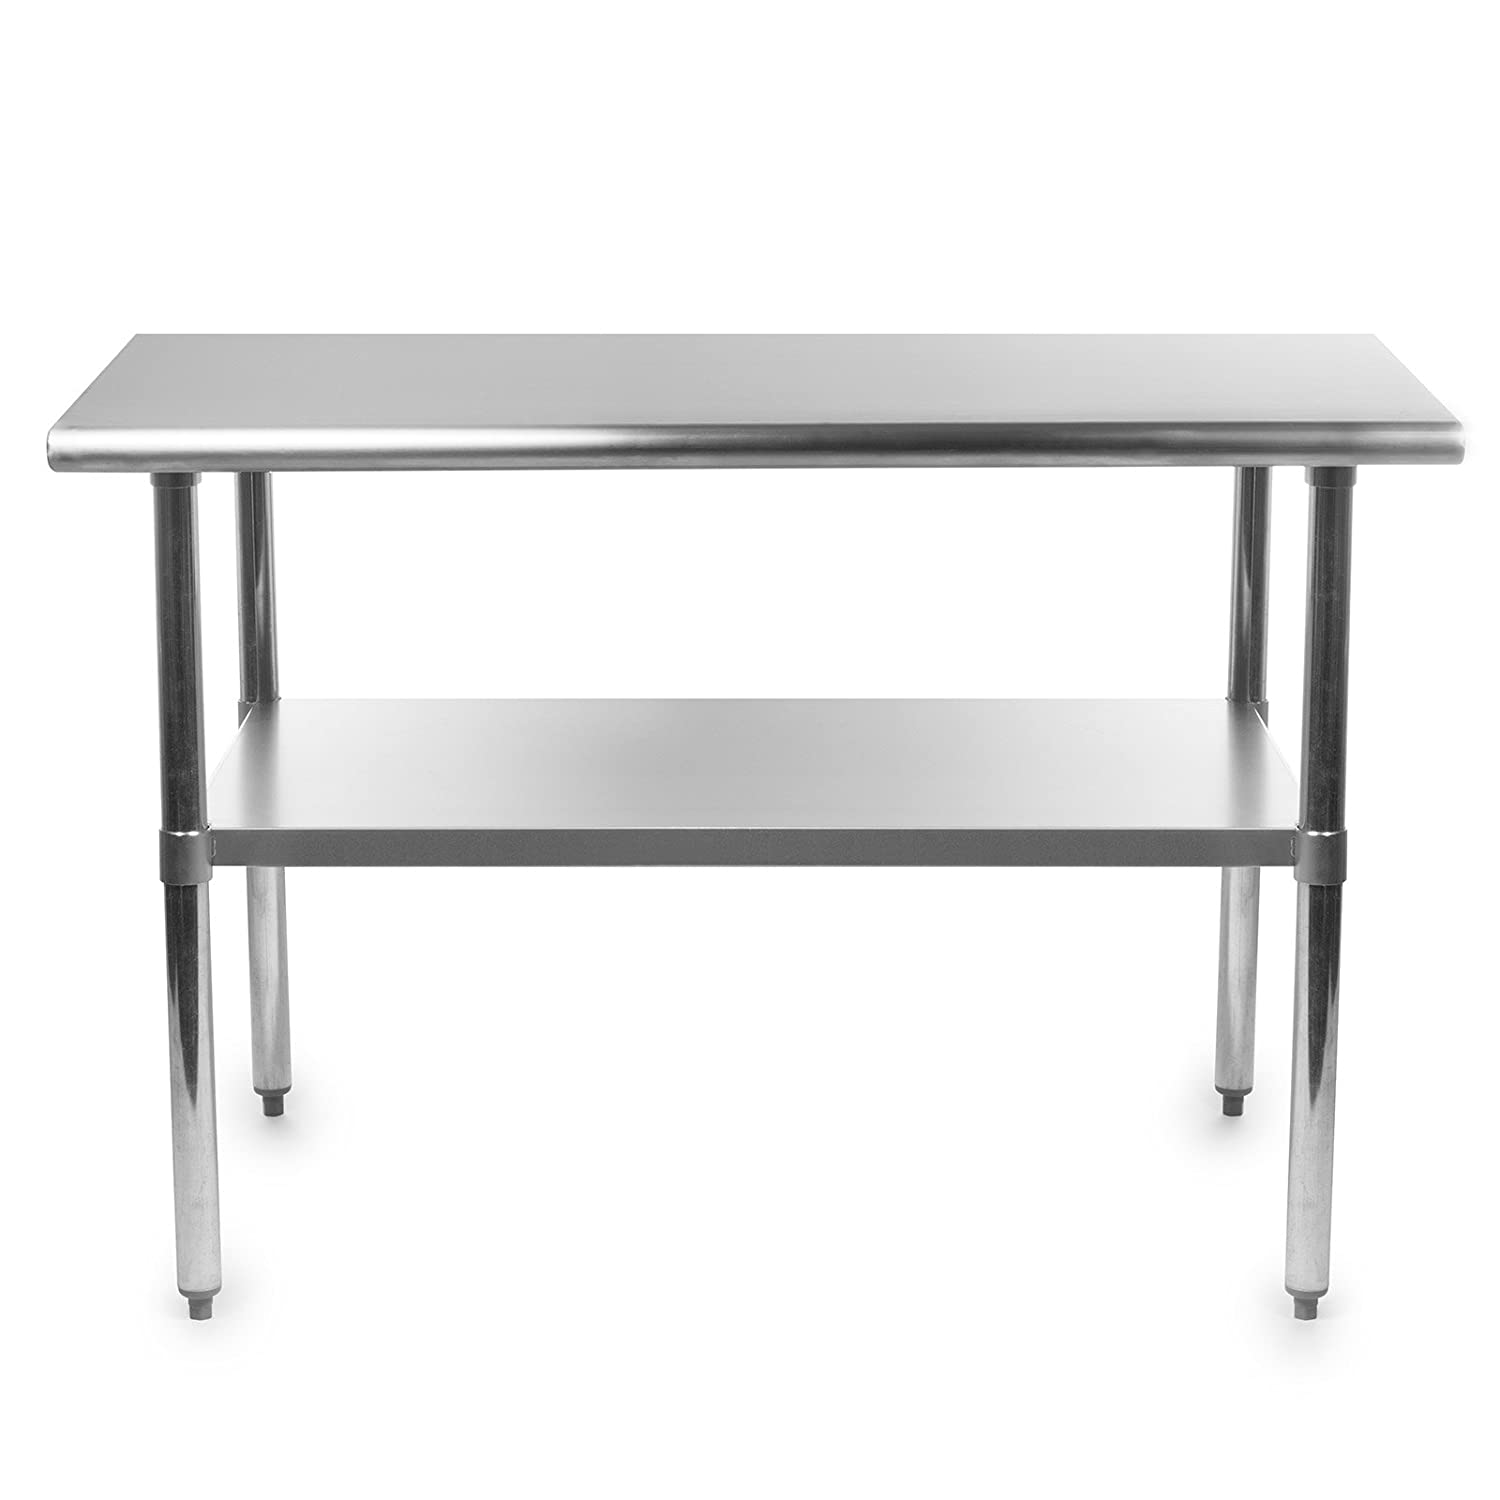 Amazoncom Gridmann 48 Inch X 24 Inch Stainless Steel Kitchen Table Industrial